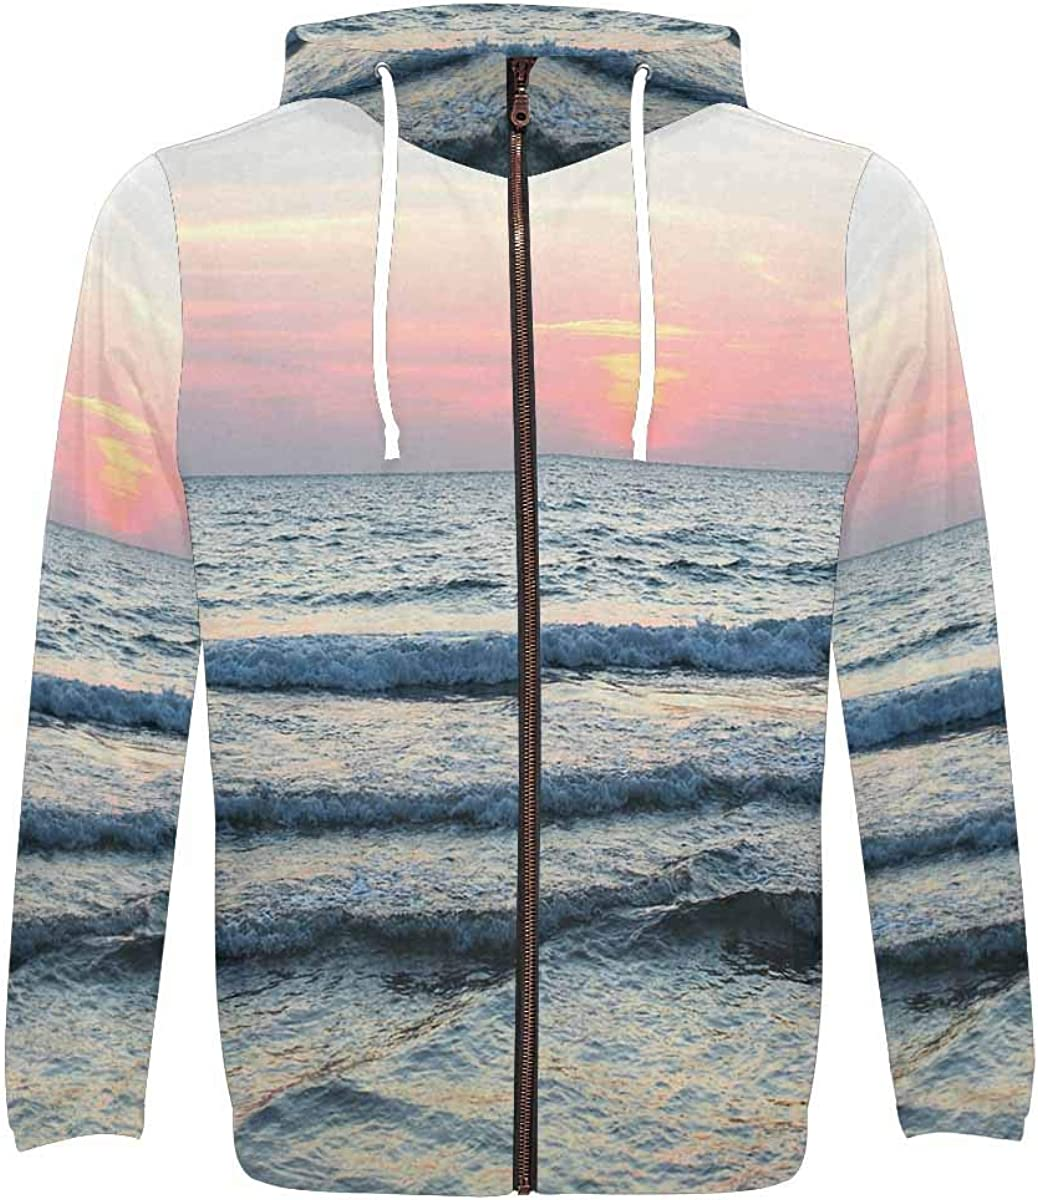 INTERESTPRINT Mens Full Zip Hoodies Sweatshirts Soft Sea Wave in The Evening